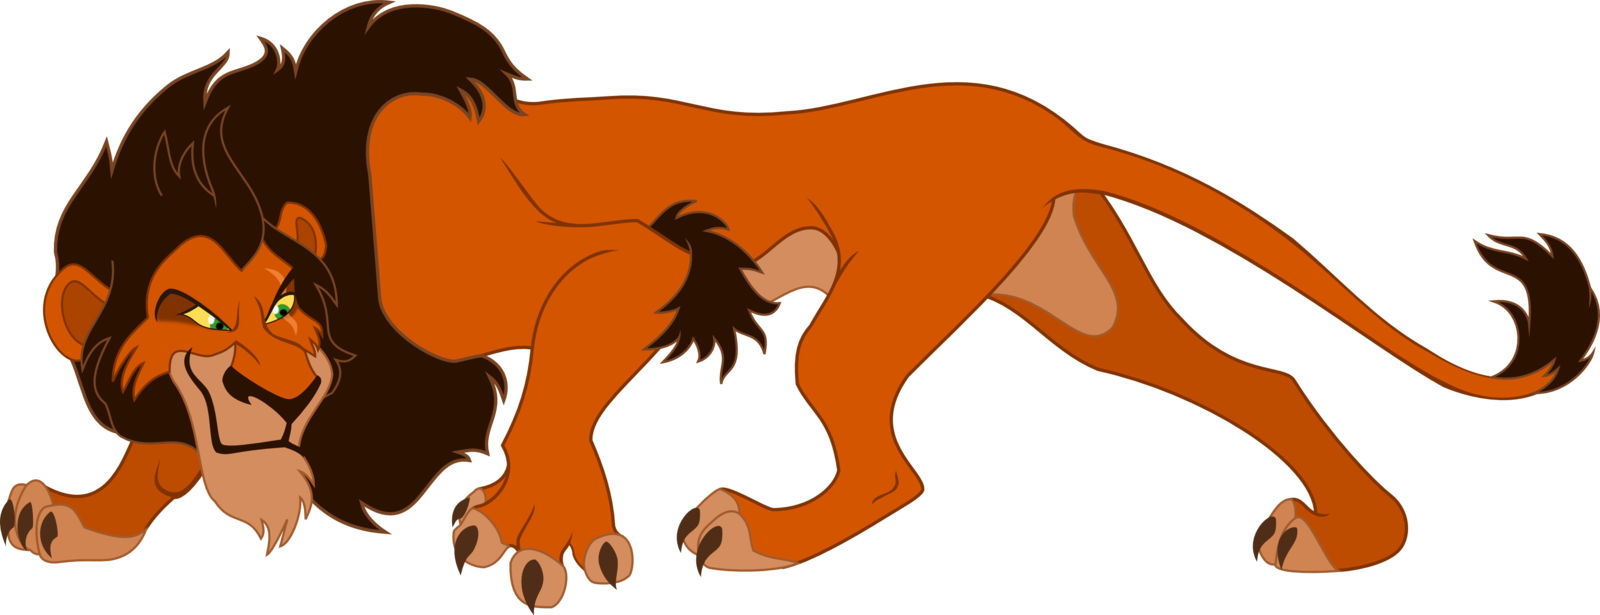 Lion King PNG